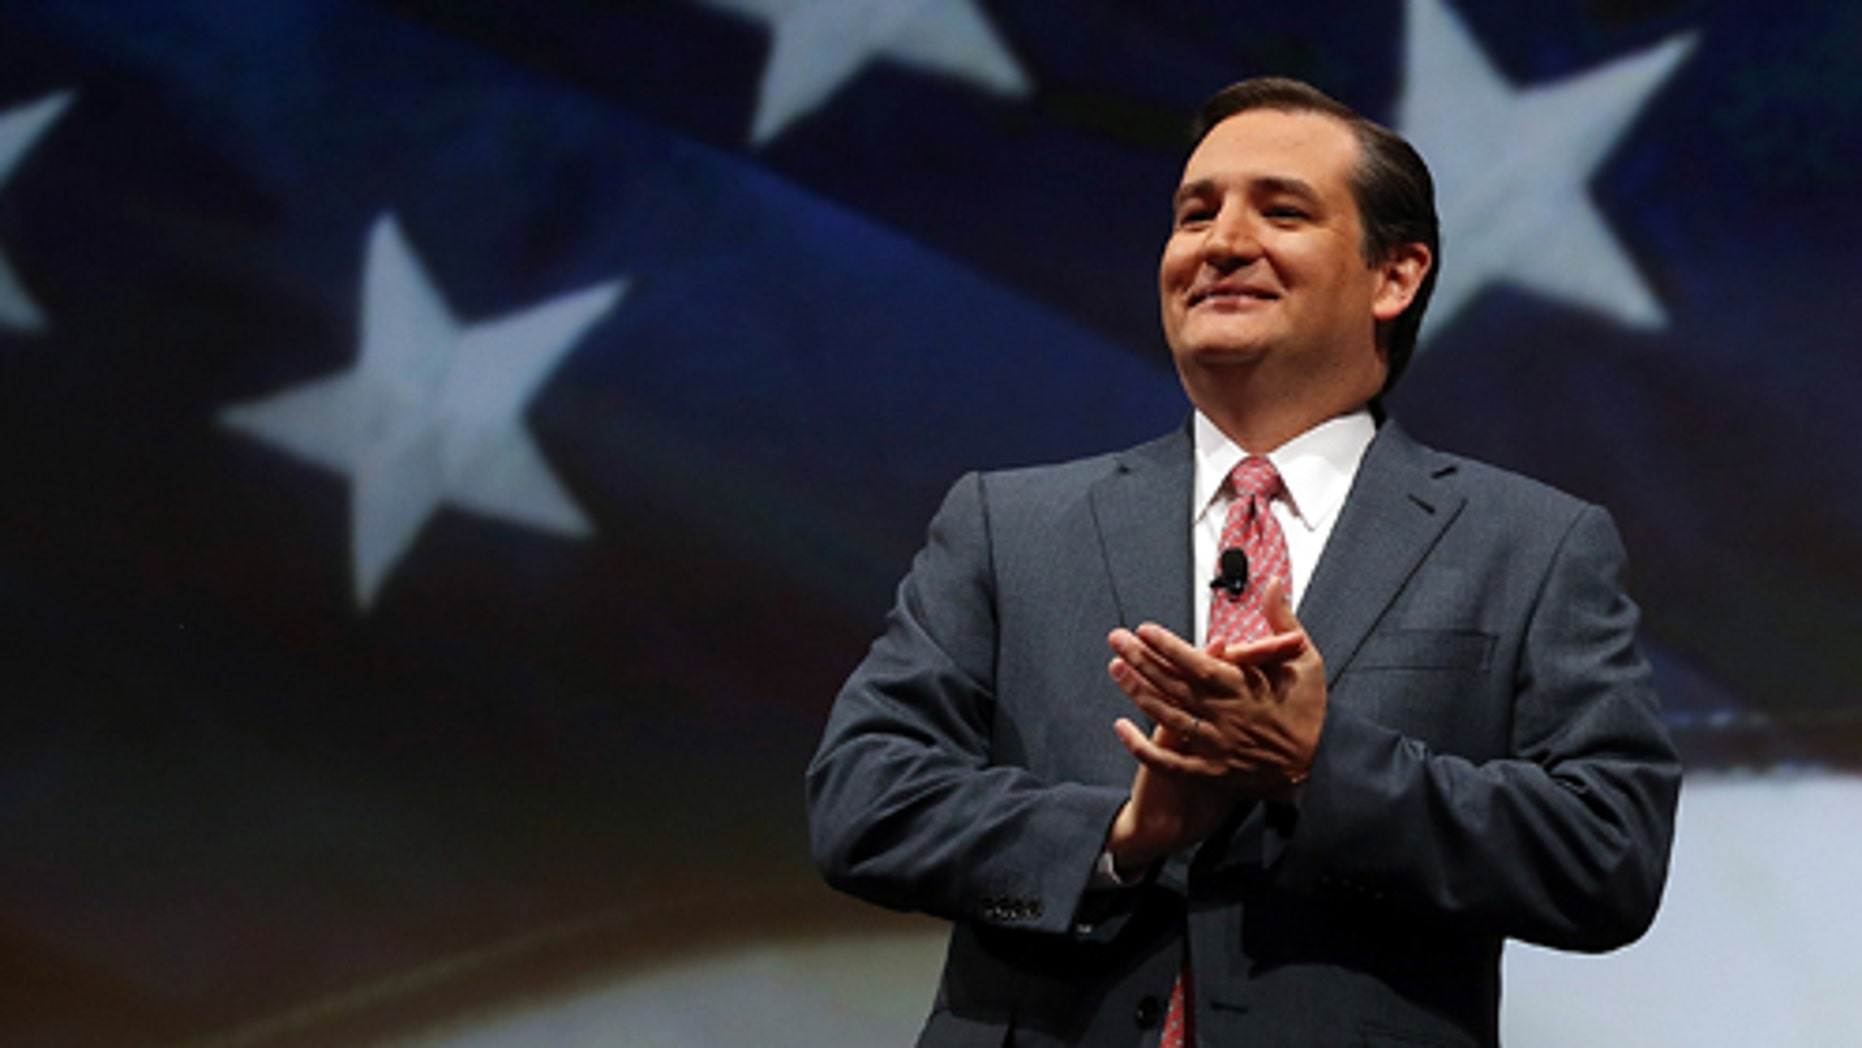 HOUSTON, TX - MAY 03:  U.S. Sen. Ted Cruz (R-TX) speaks during the 2013 NRA Annual Meeting and Exhibits at the George R. Brown Convention Center on May 3, 2013 in Houston, Texas.  More than 70,000 peope are expected to attend the NRA's 3-day annual meeting that features nearly 550 exhibitors, gun trade show and a political rally. The Show runs from May 3-5.  (Photo by Justin Sullivan/Getty Images)